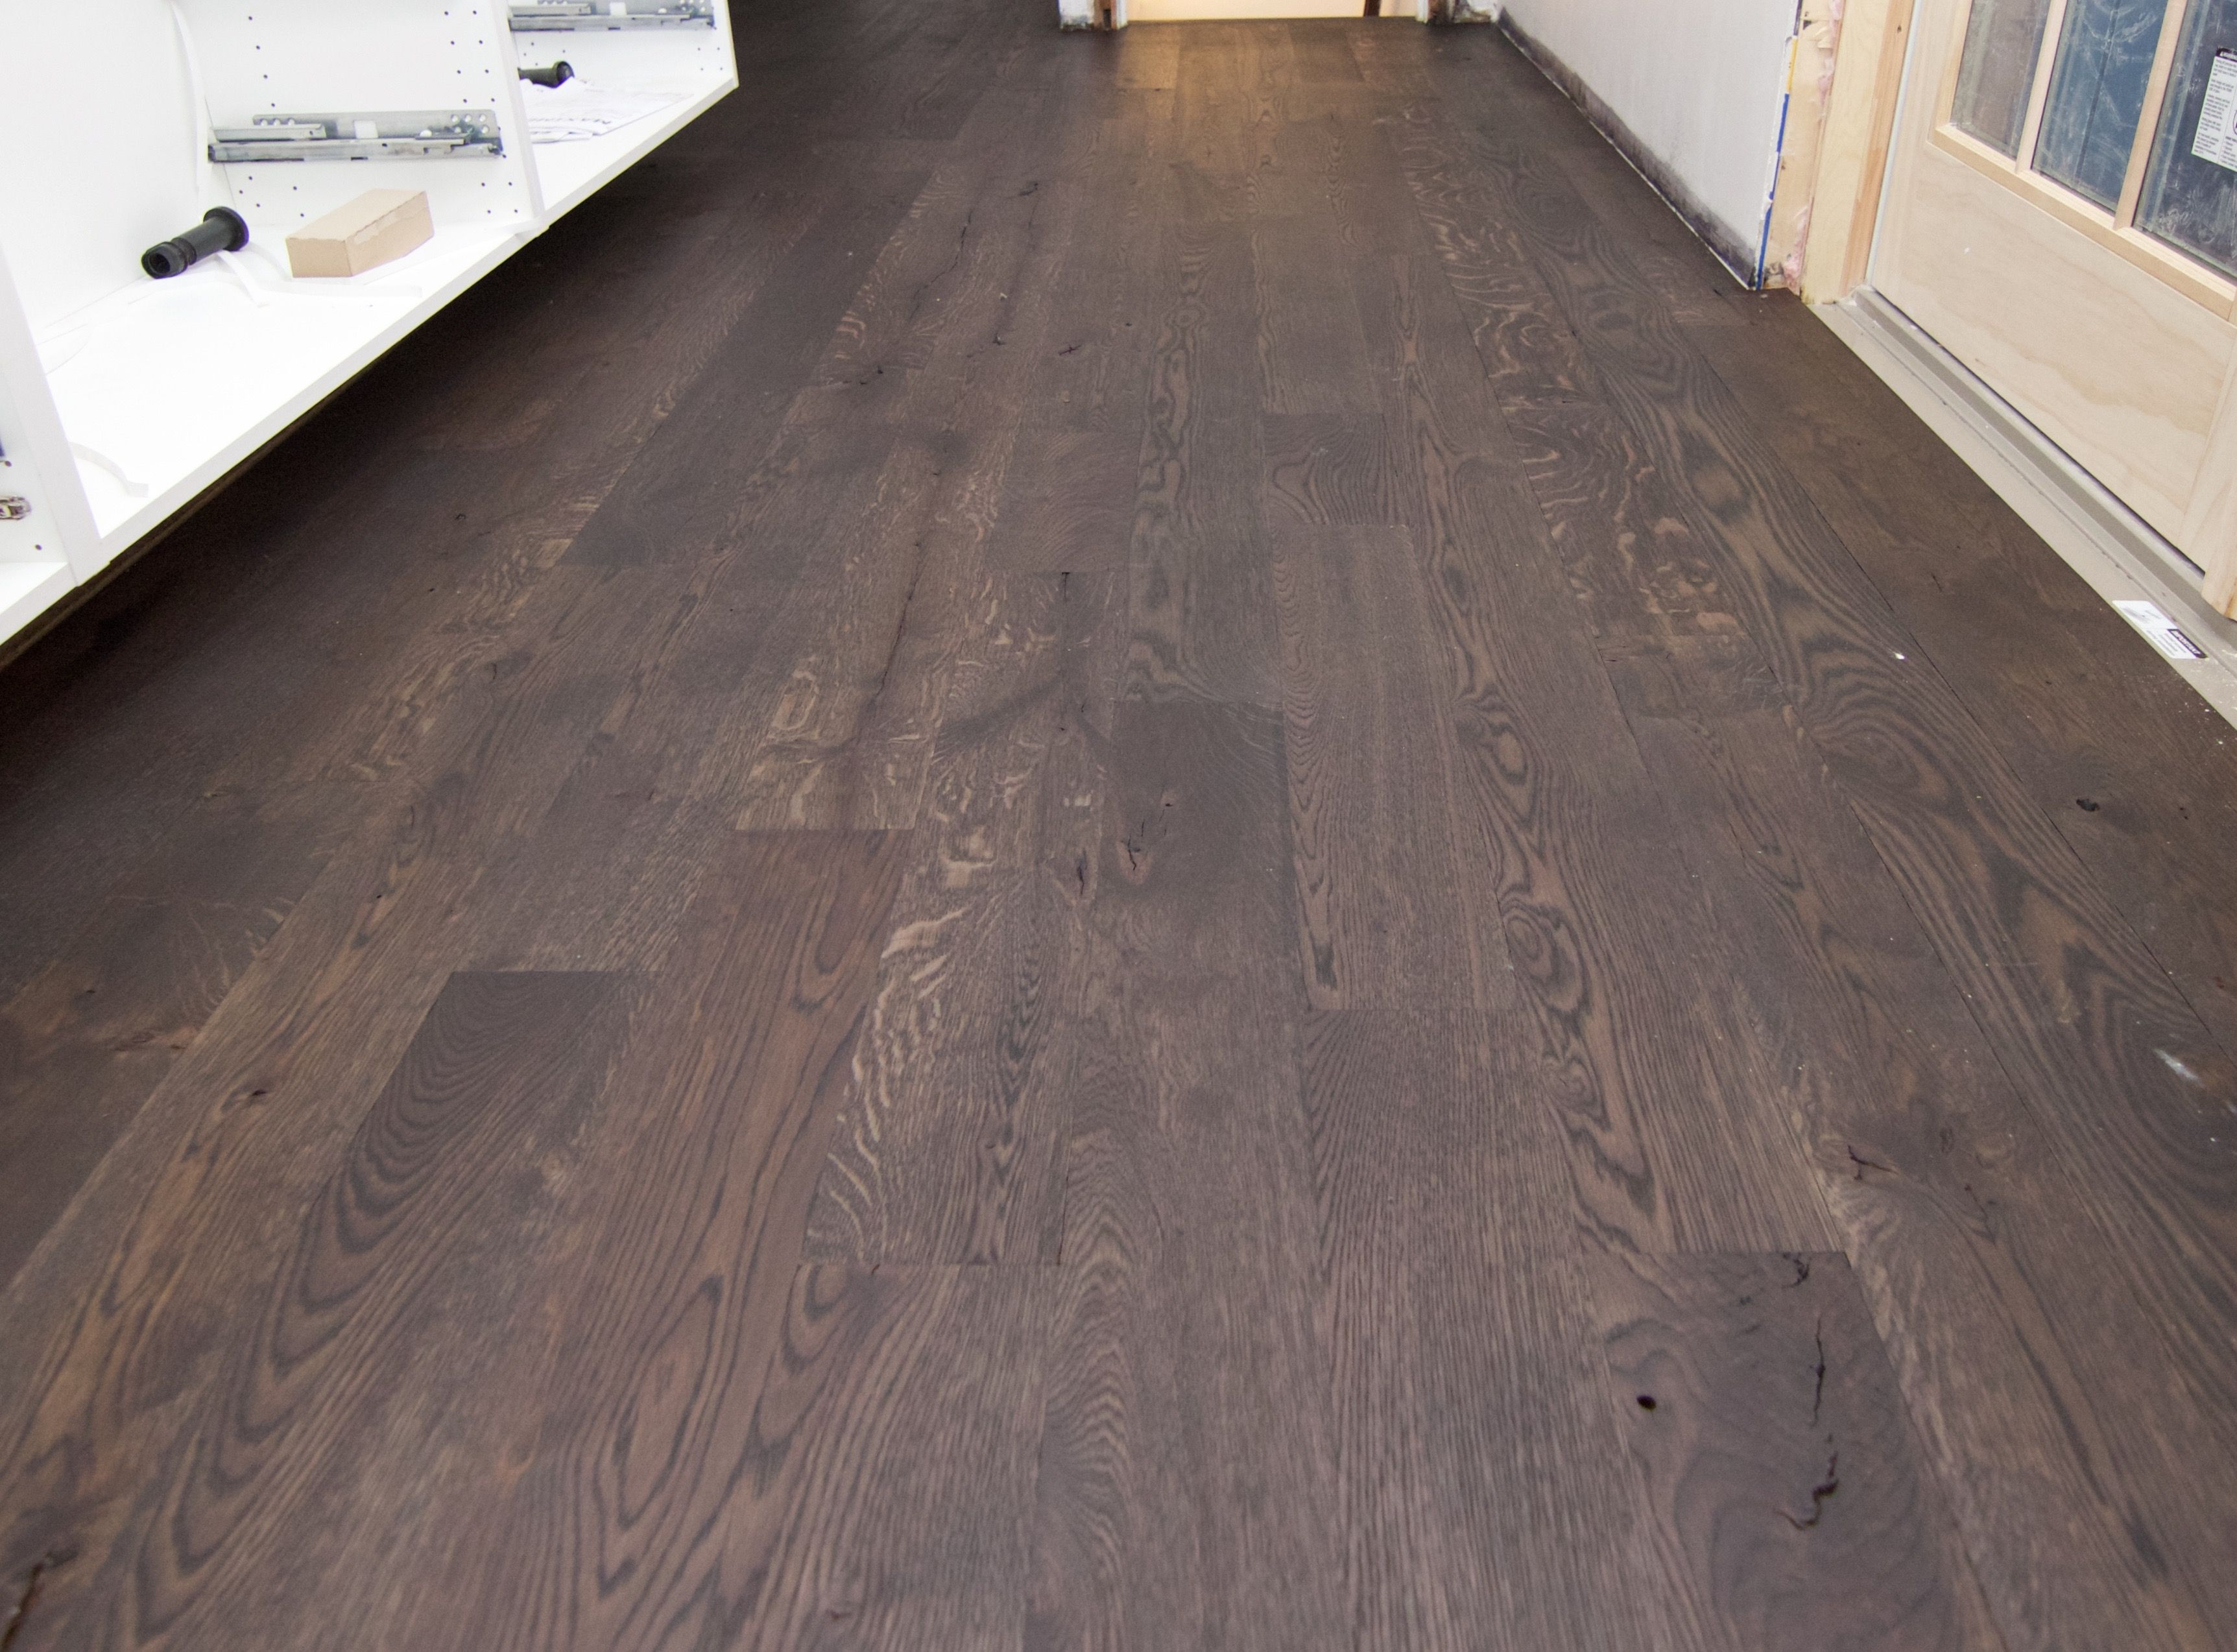 Wire Brush Live Sawn 5 White Oak Hardwood Flooring With Ciranova S Burnt Reactive Stain And Loba Transpa Impact Oil